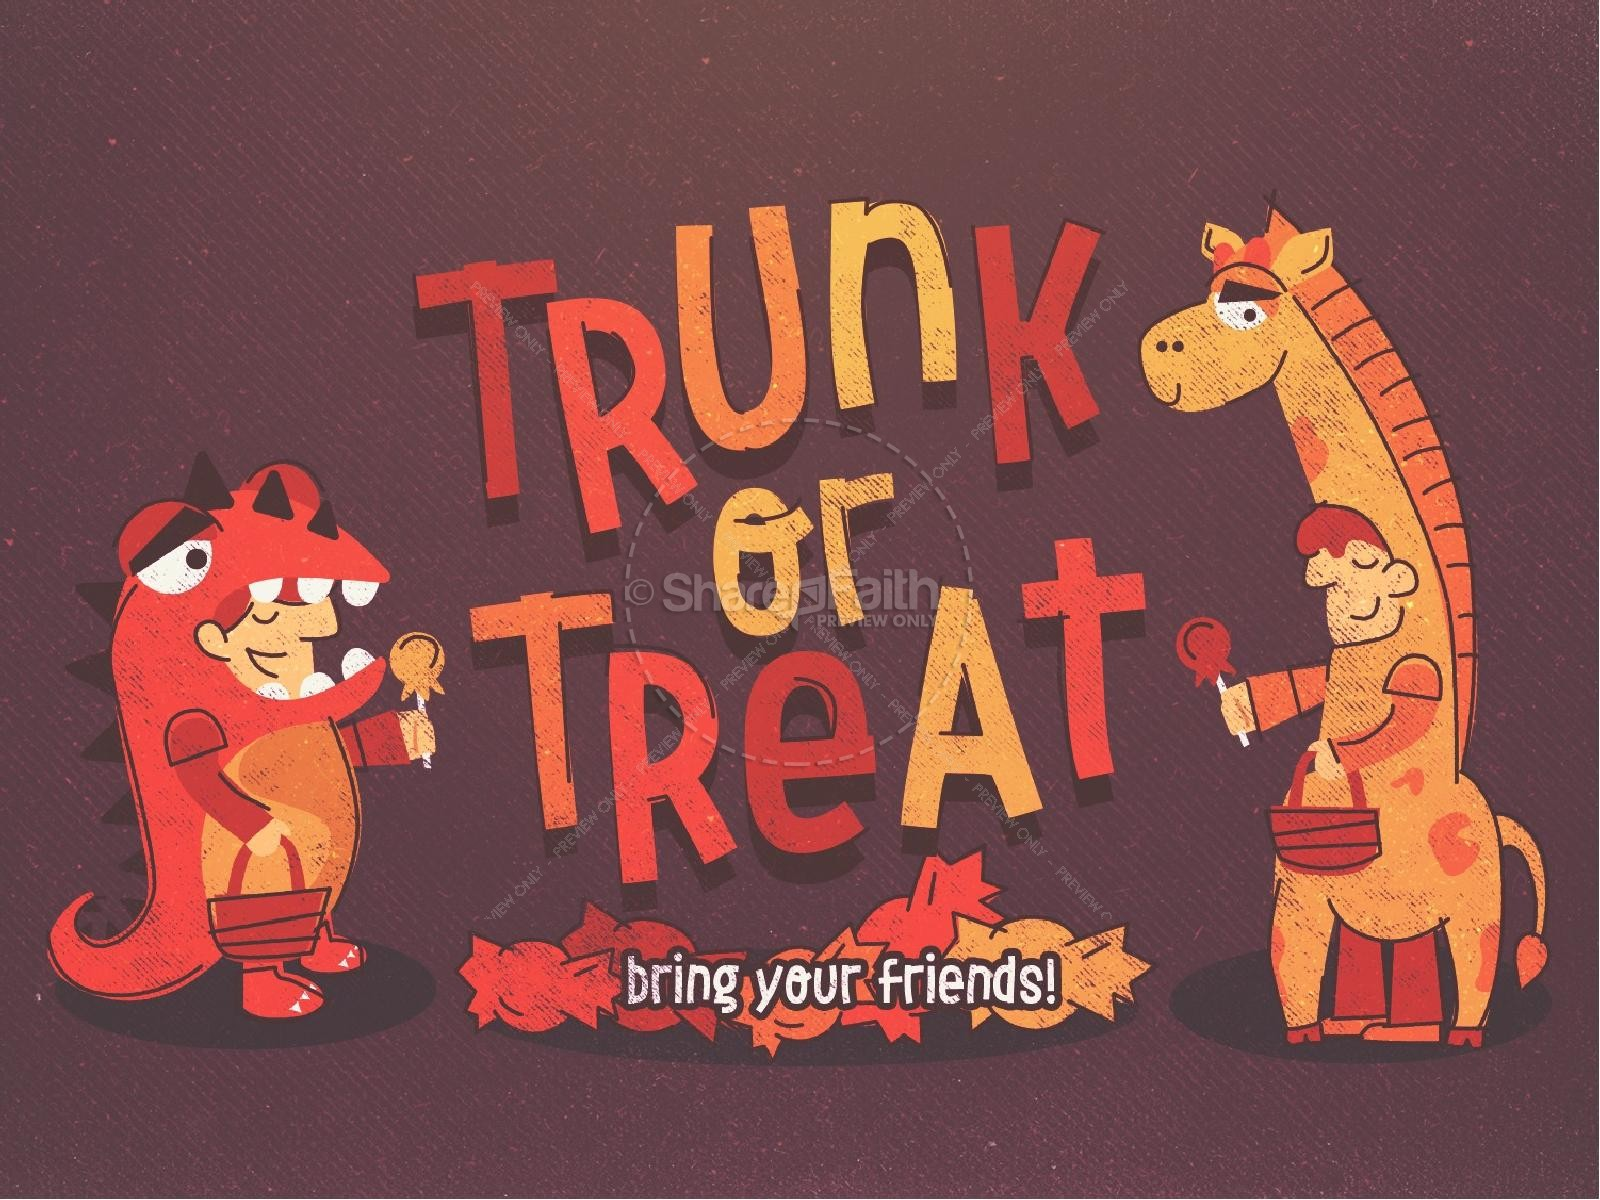 Trunk or Treat Harvest Festival PowerPoint